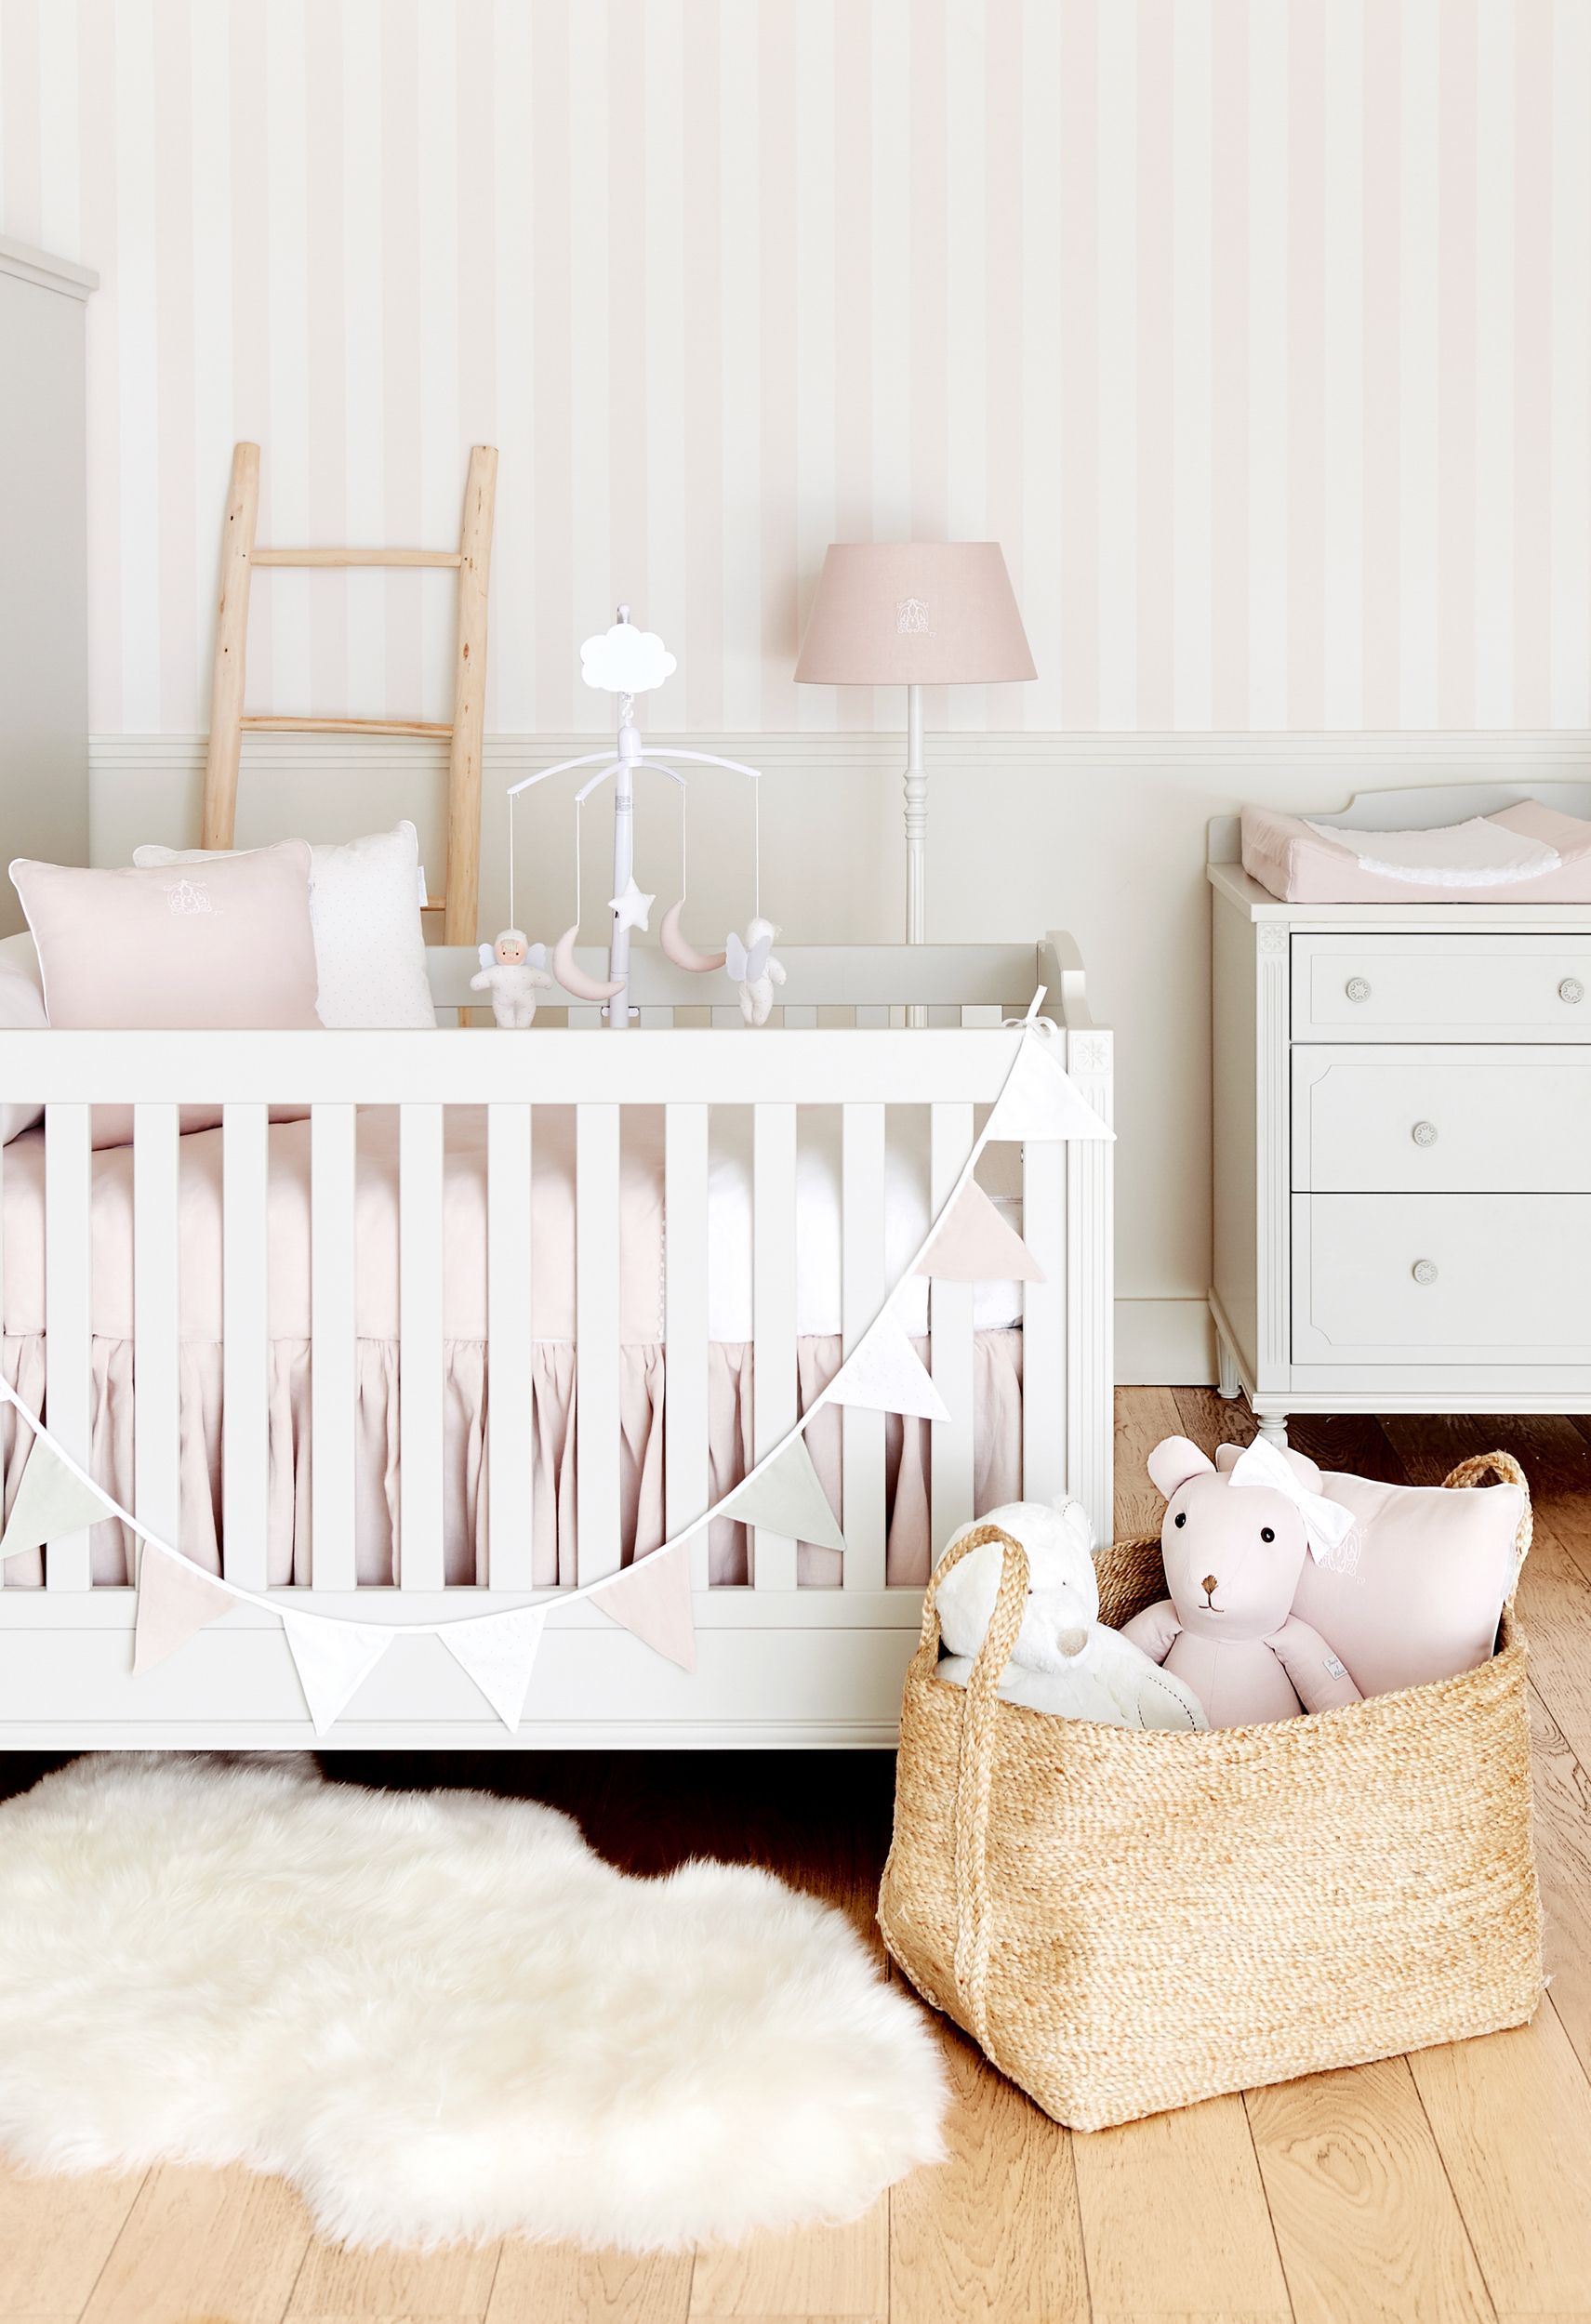 Babyroom Inspiration Come To Discover Our New Decor In Stores Avenue Louise 132a 1050 Brussels Theophile Et Patachou Decoration Chambre Bebe Meuble Bebe